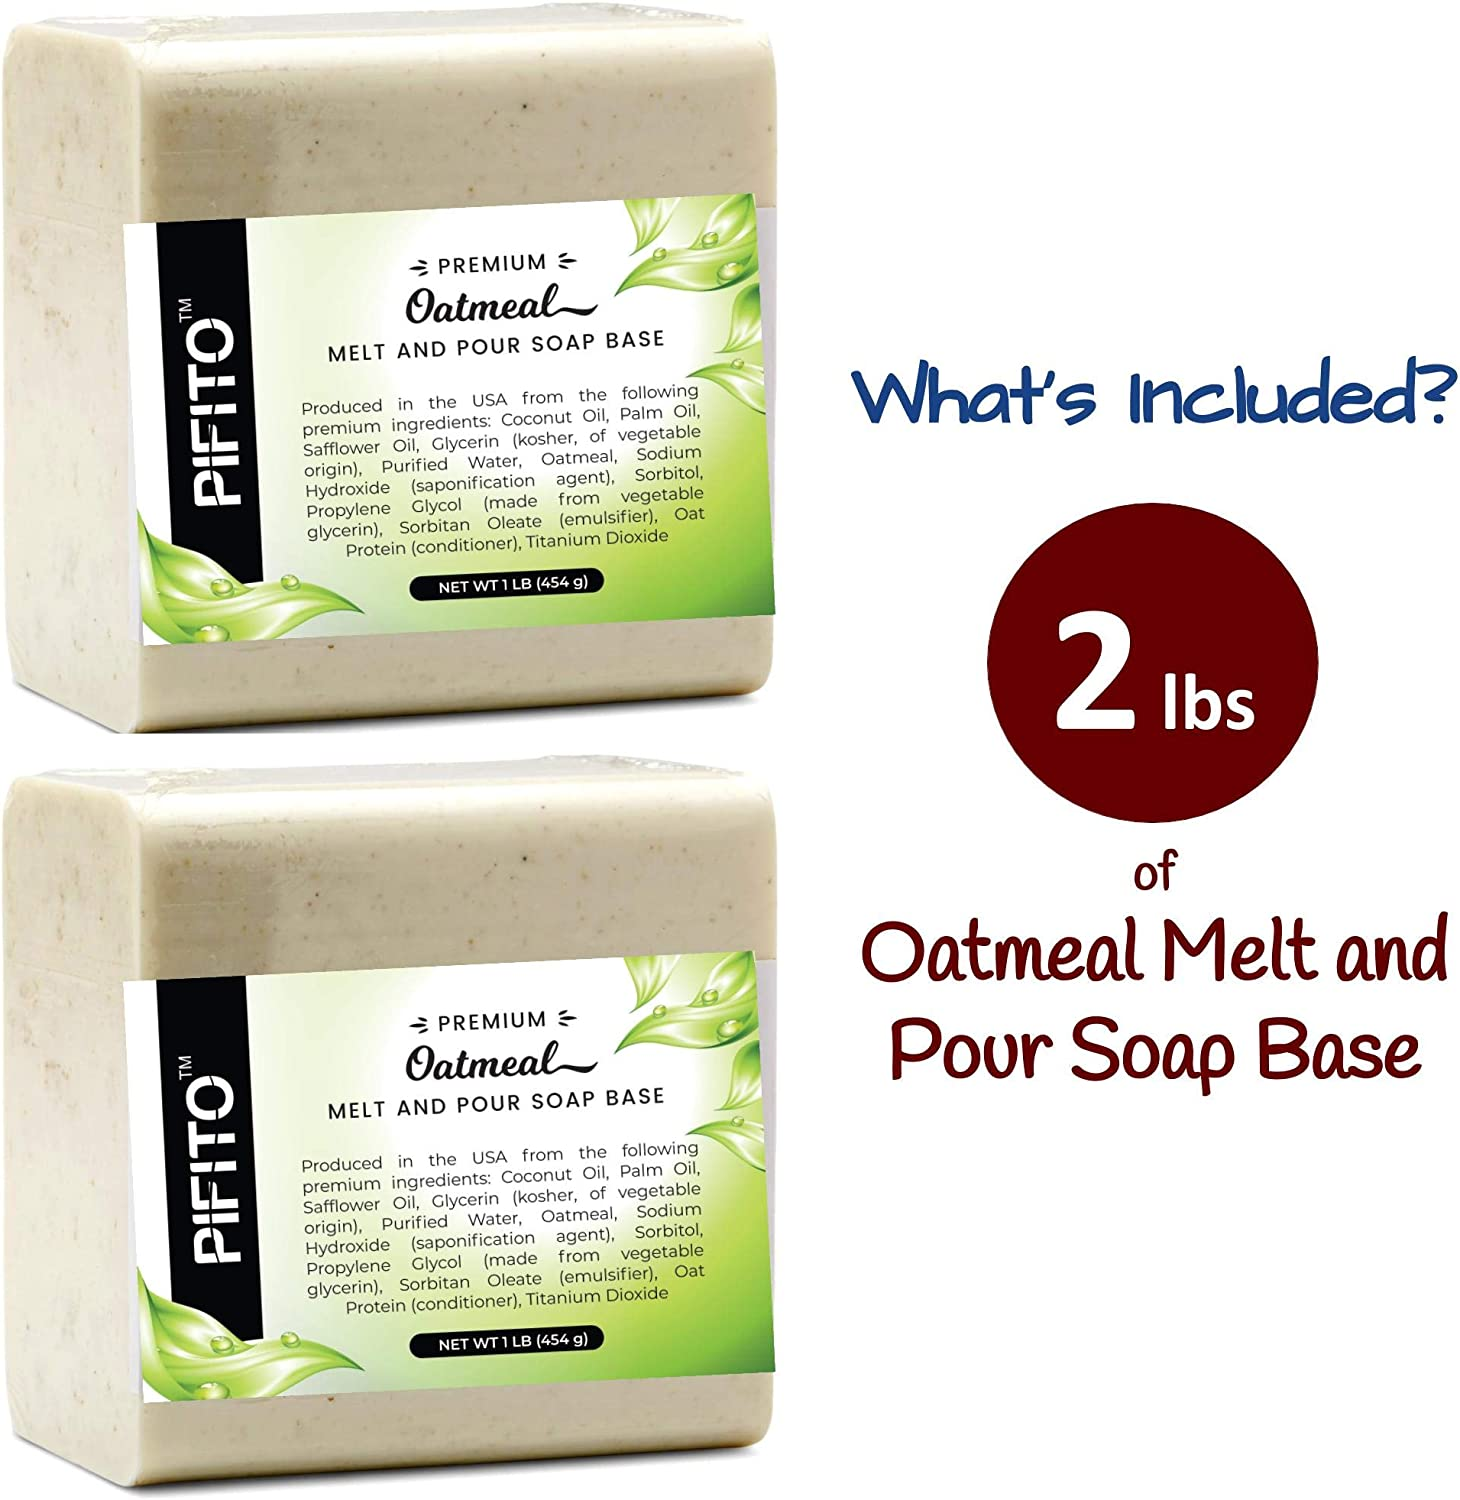 Pifito Oatmeal Melt and Pour Soap Base (2 lb) │ Premium 100% Natural Glycerin Soap Base │ Luxurious Soap Making Supplies: Beauty